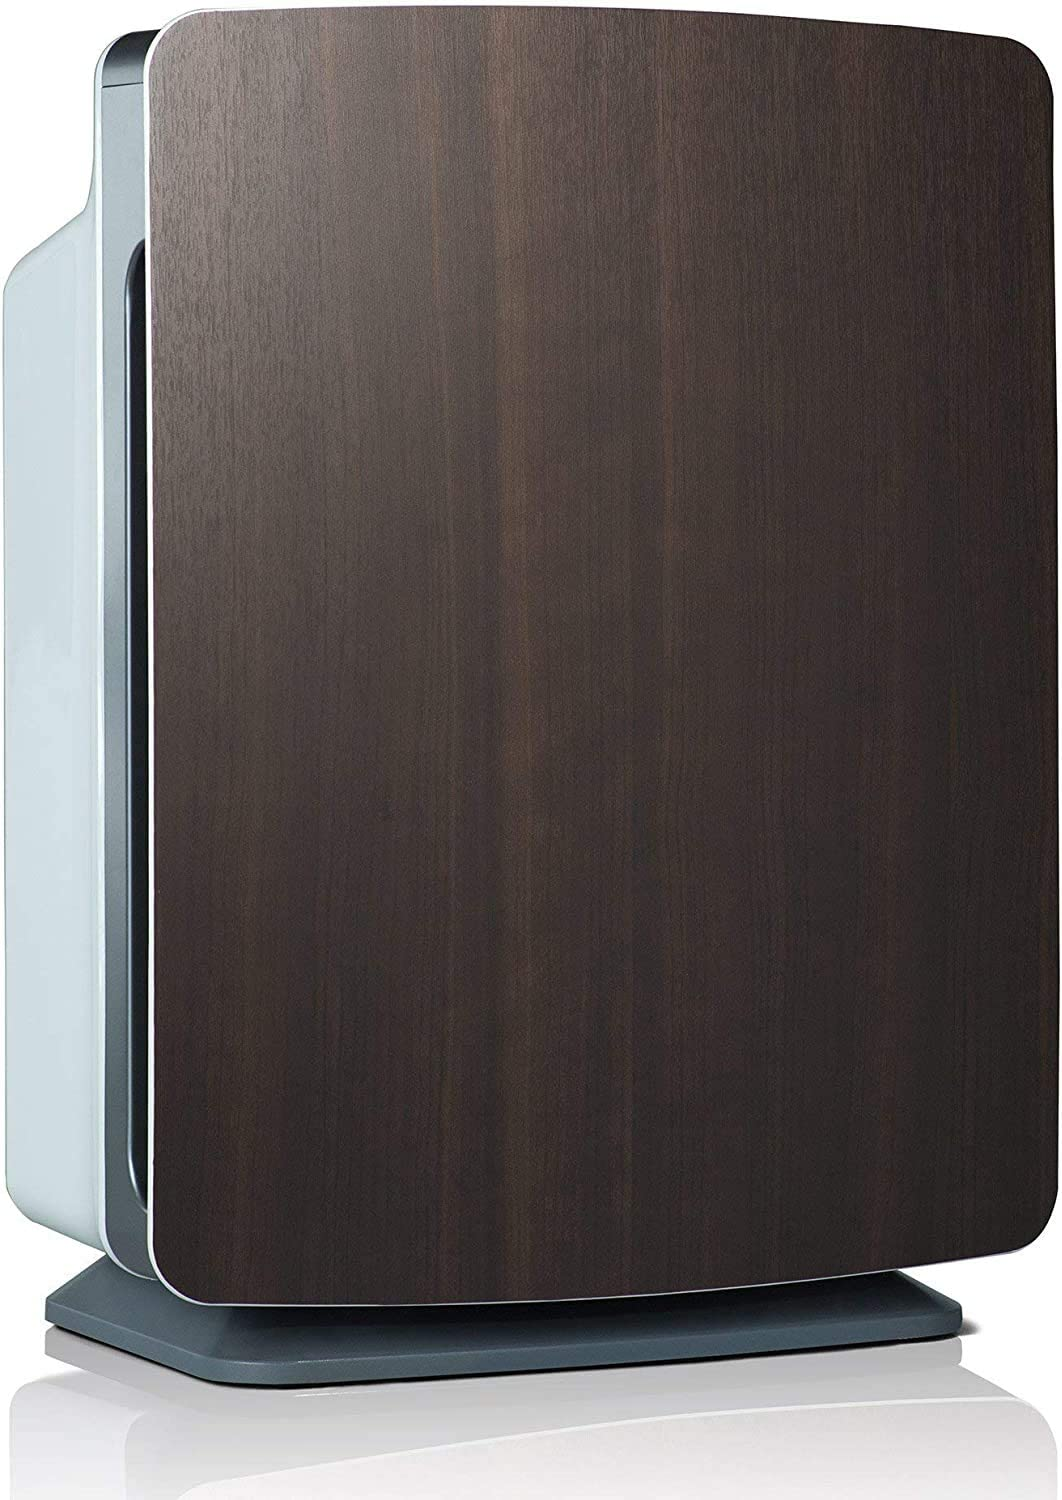 Alen BreatheSmart FIT50 Air Purifier with True HEPA Carbon Filter for Heavy Smoke, Wildfire Smoke, Chemicals, Dust, Allergies, Large Room Air Cleaner, Espresso